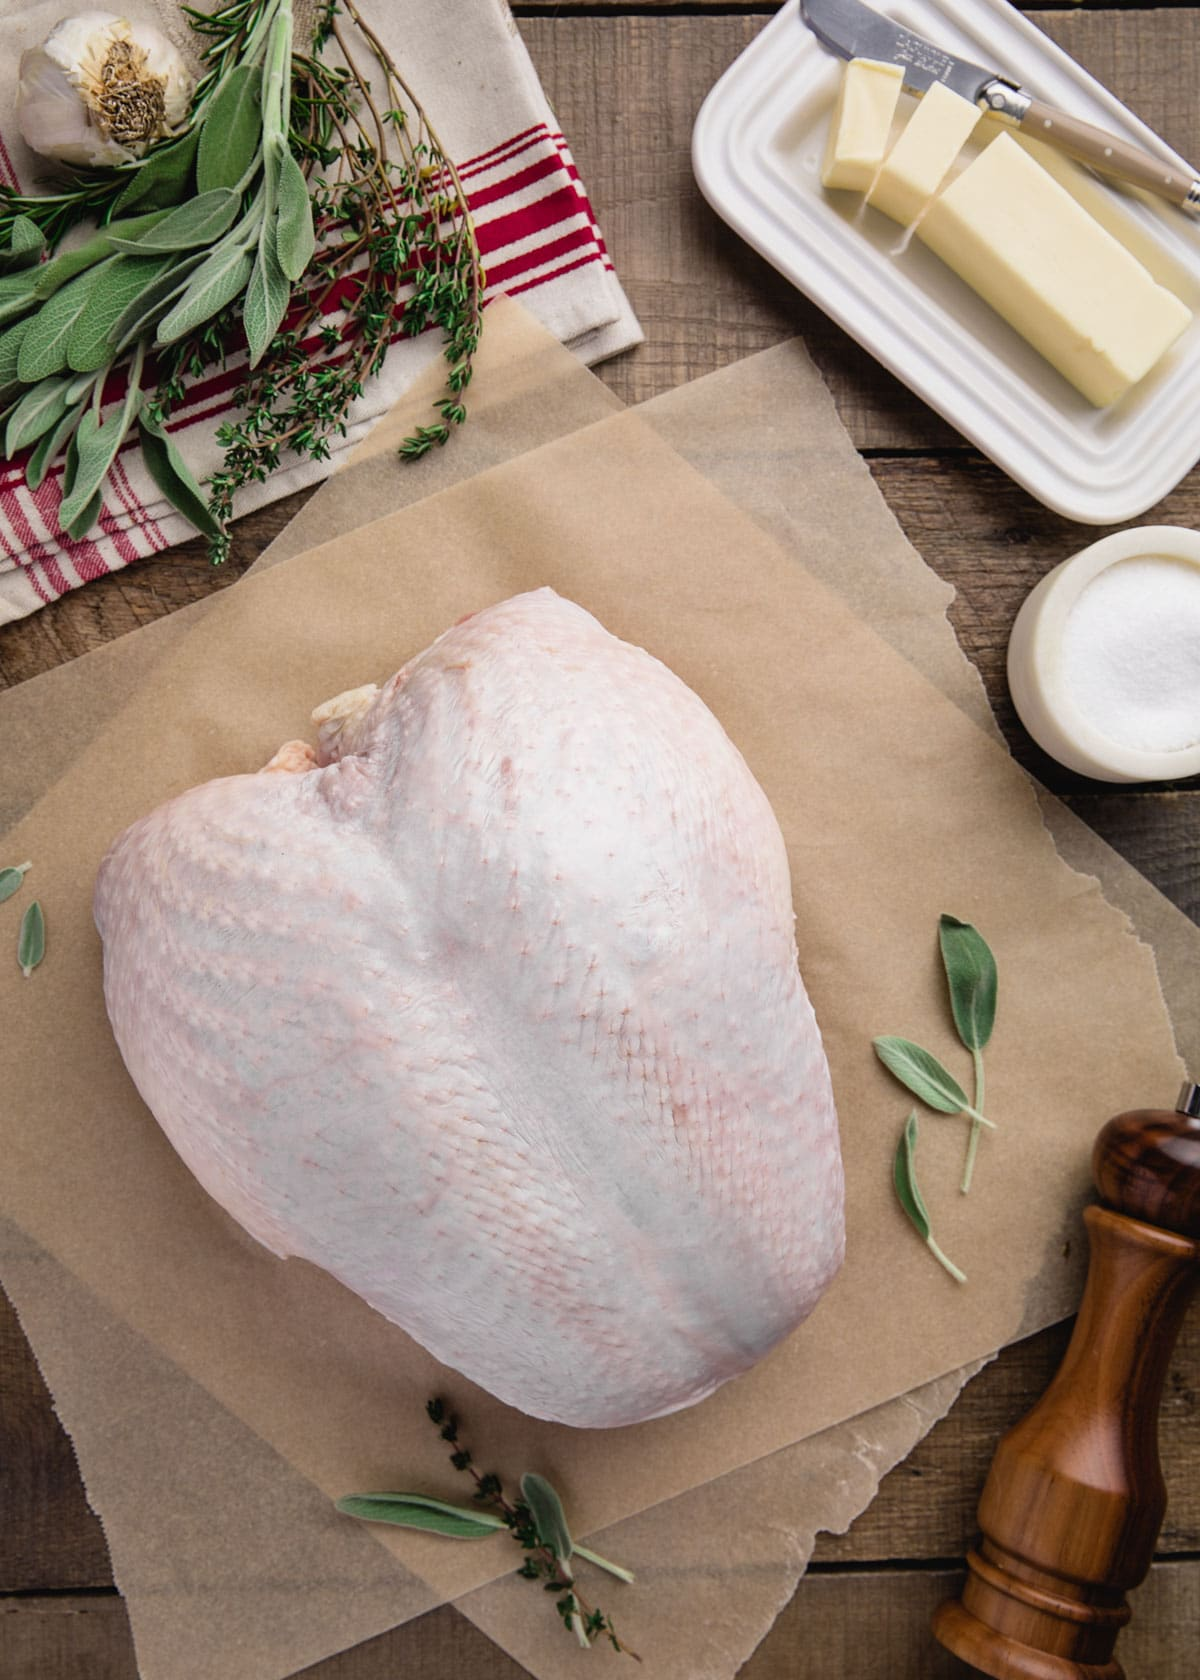 raw whole turkey breast on parchment paper next to a stick of butter, herbs, and seasonings